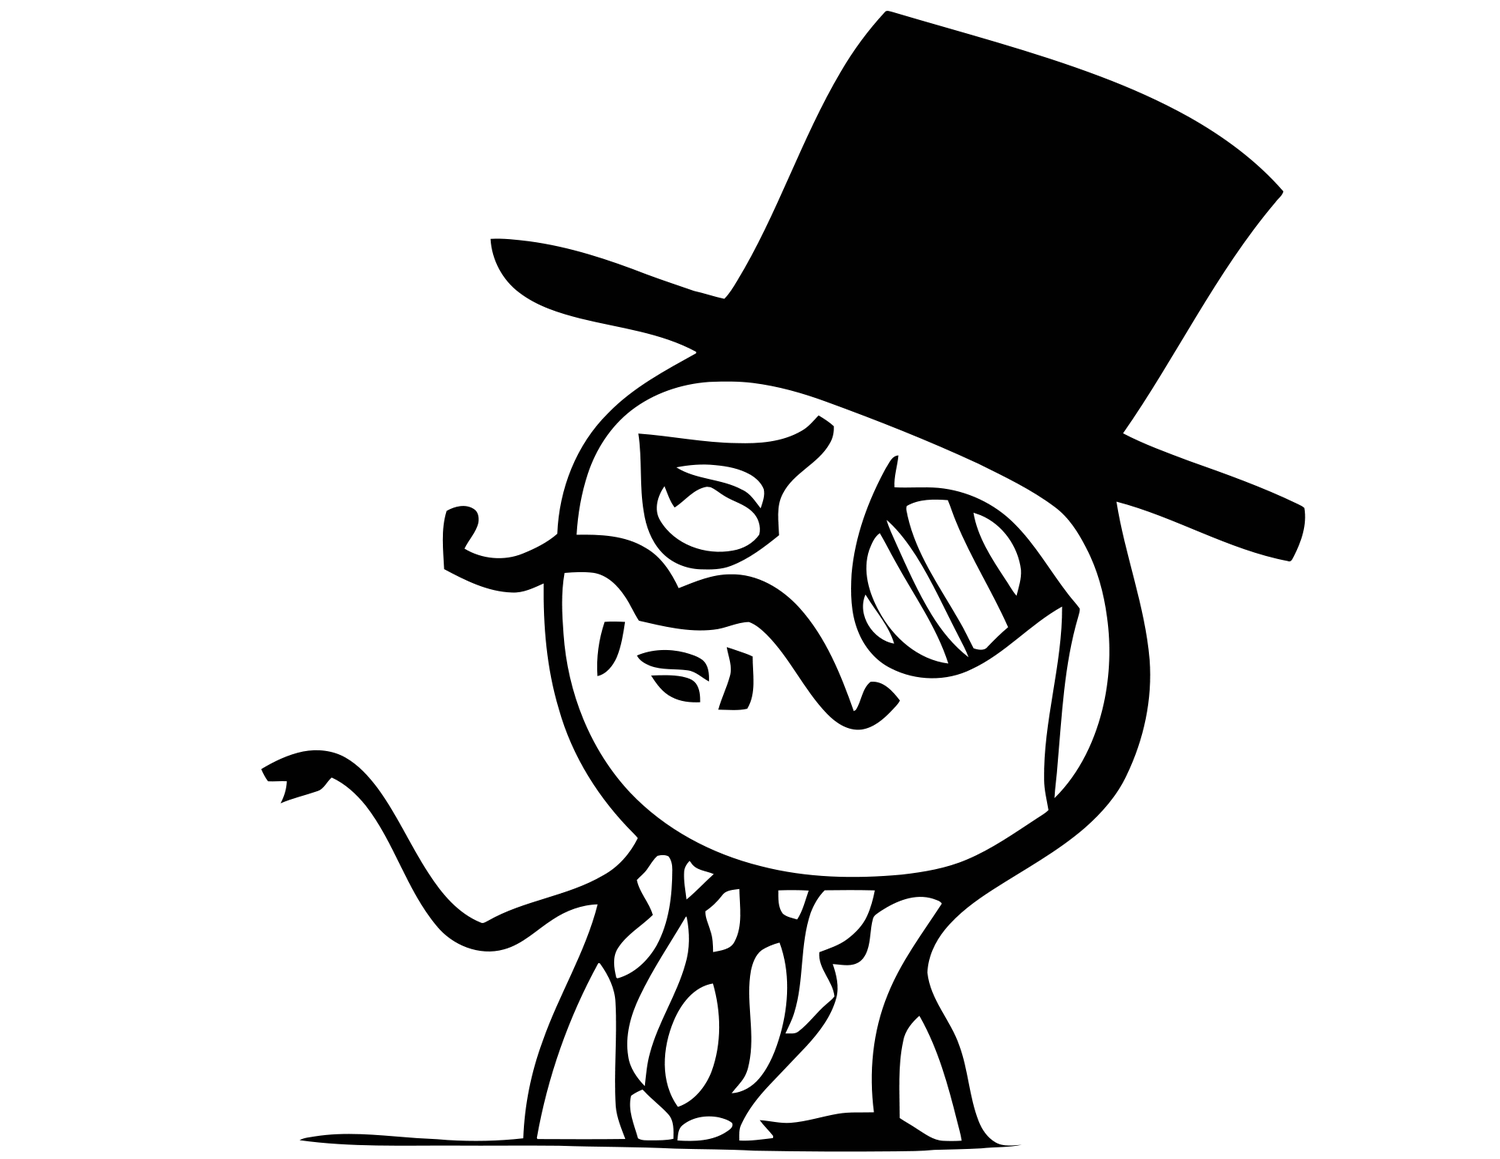 meme faces like a sir - photo #10